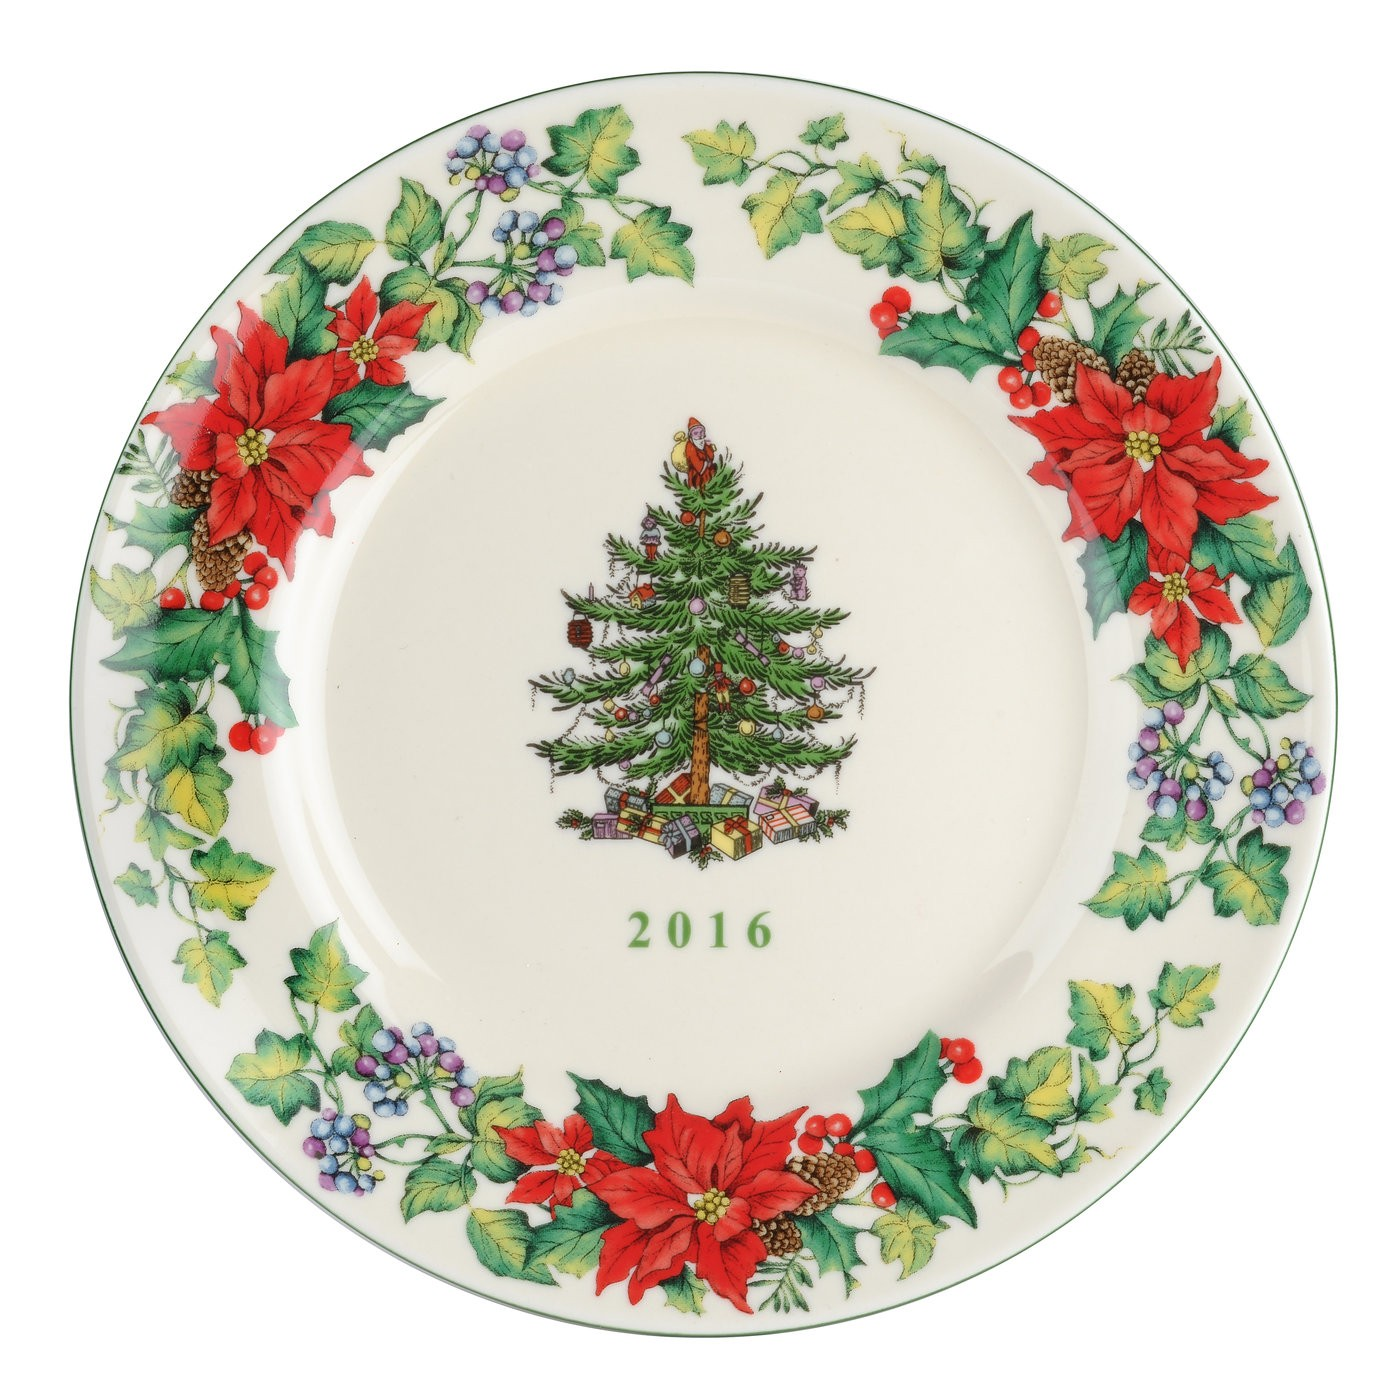 Spode Christmas Tree 2016 Collector Plate $29.99, You Save ...